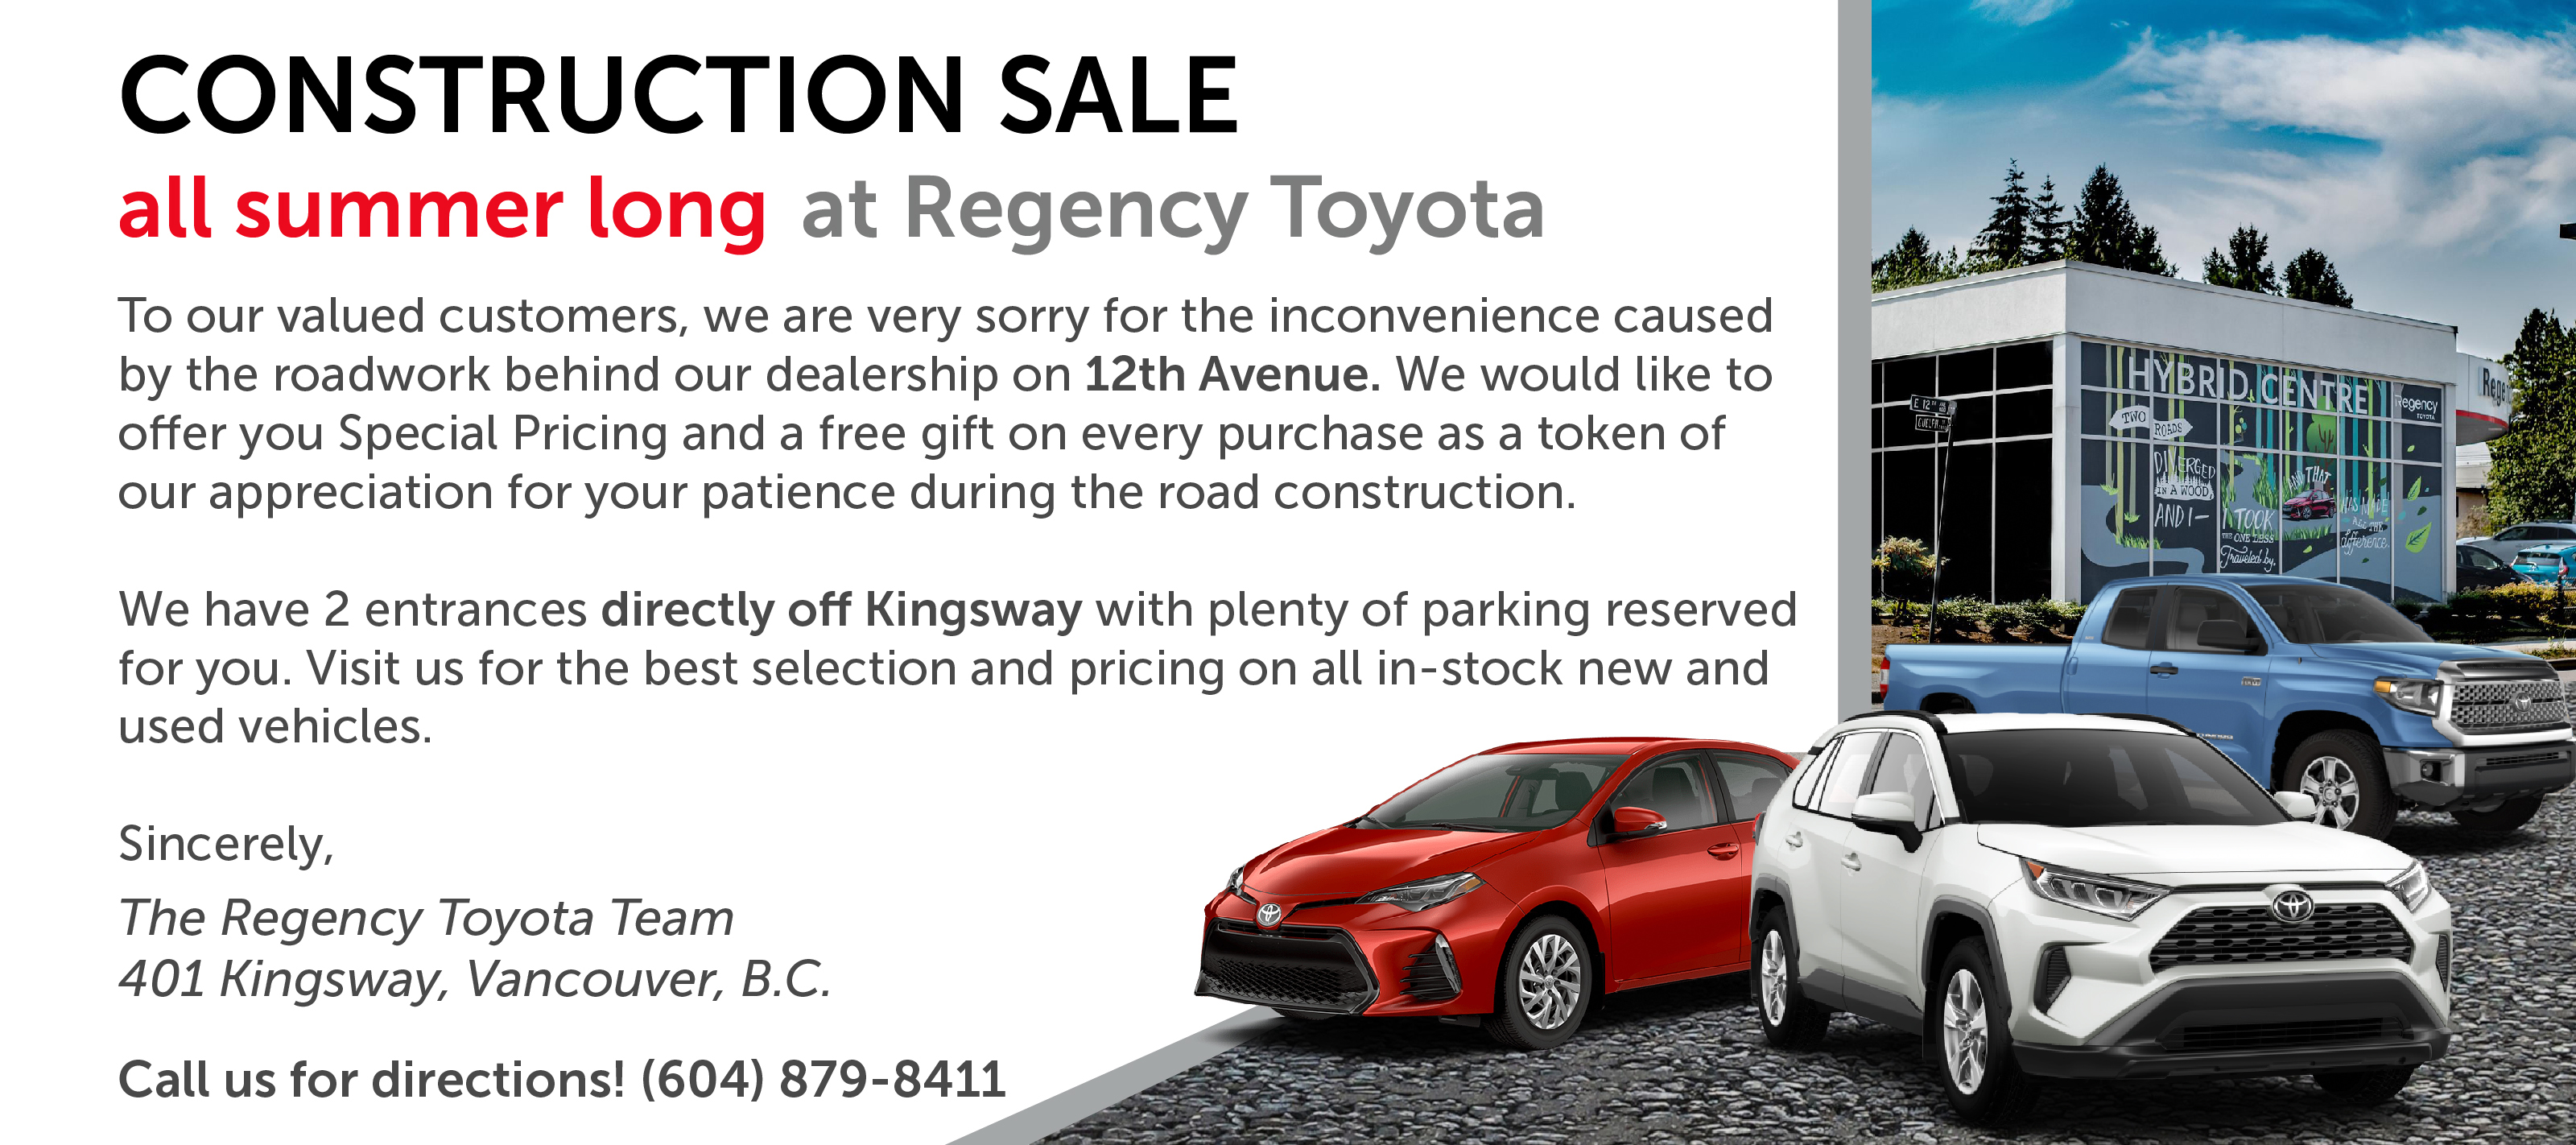 Regency Toyota | New & Used Toyota Dealer in Vancouver, BC